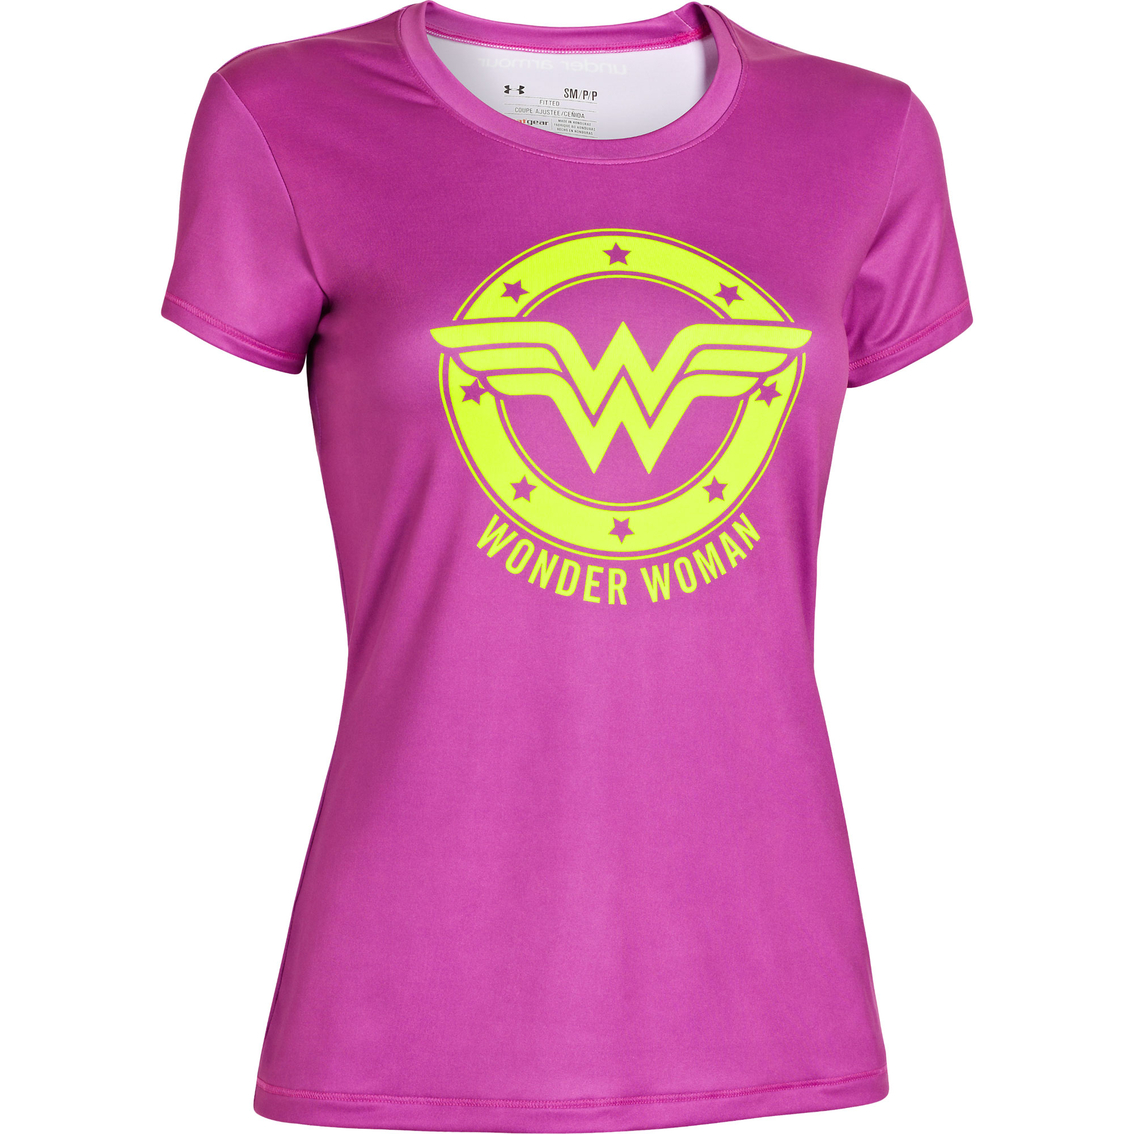 3876cb43 Under Armour Alter Ego Sonic Wonder Woman Tee   Tops   Apparel ...